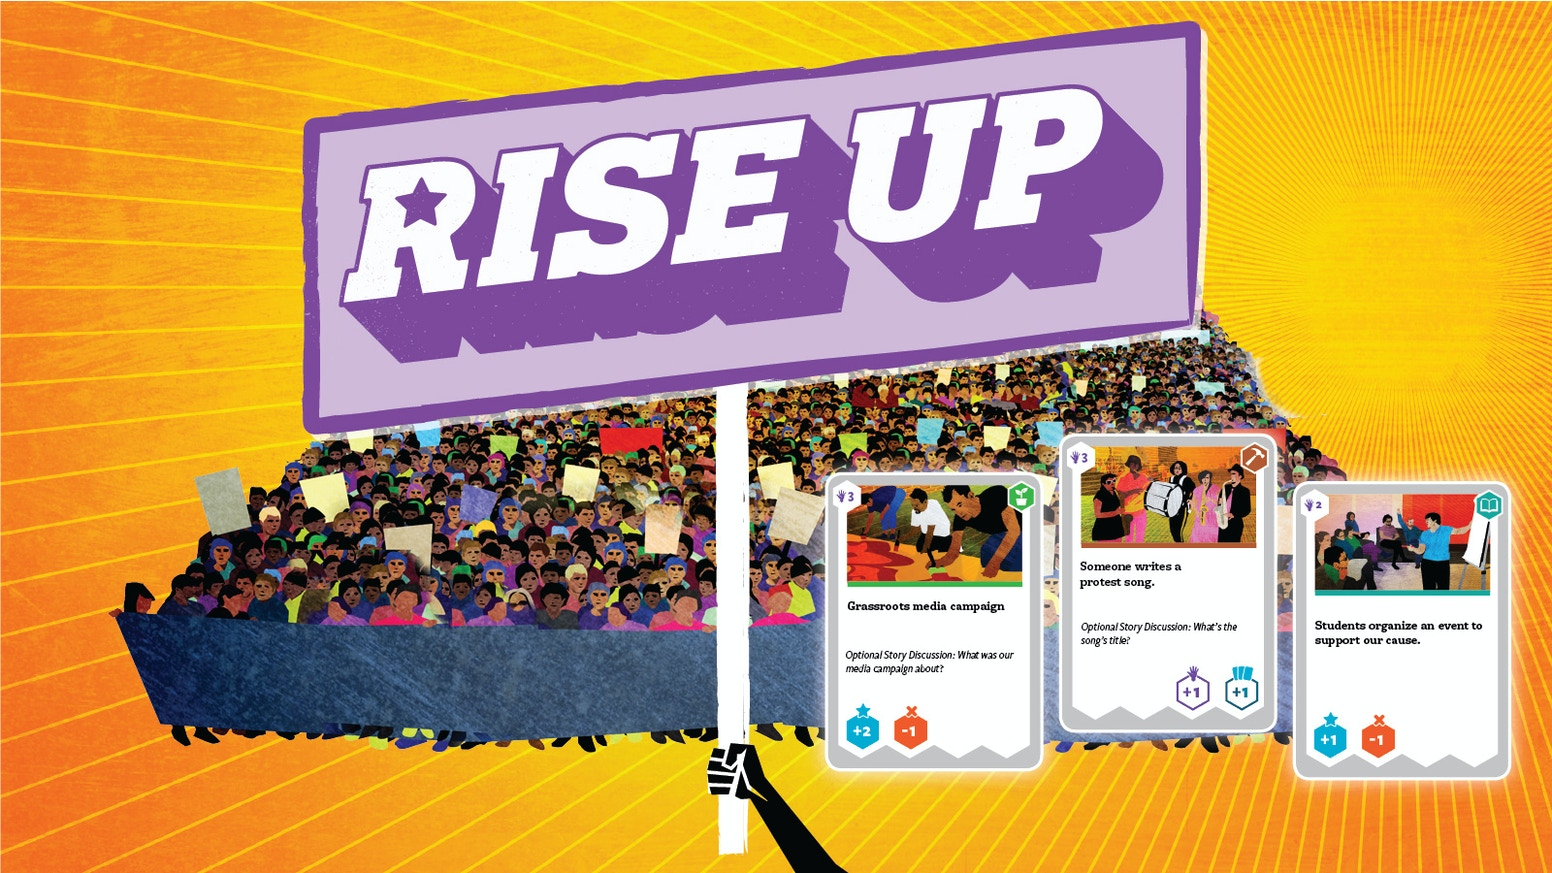 Rise up the game of people and power by toolbox for education and build your movement beat the system a board game about people winning together xflitez Images